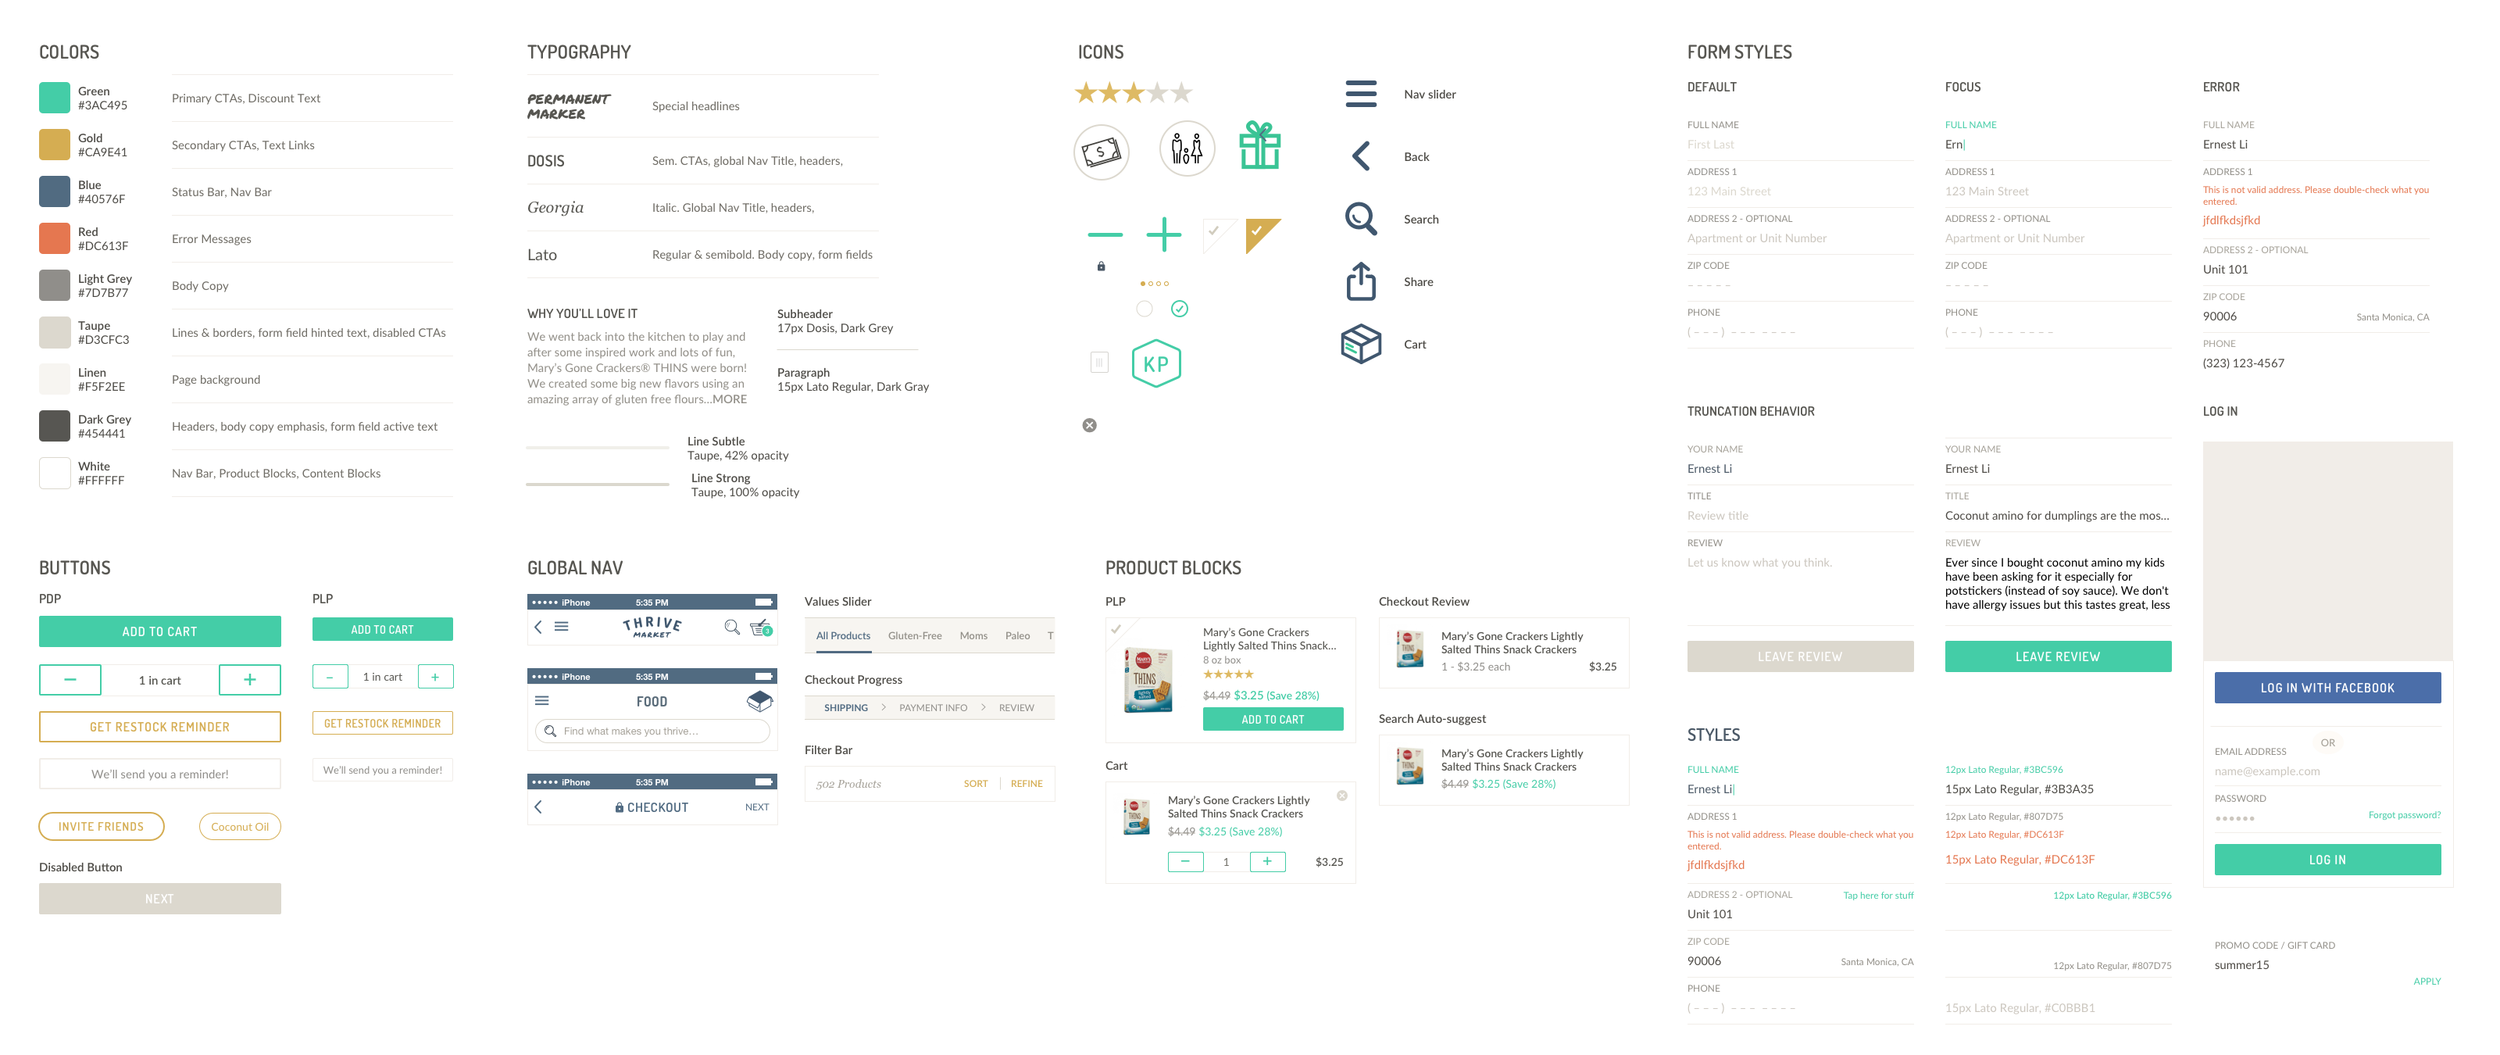 Version 1.0 of the Thrive Design System